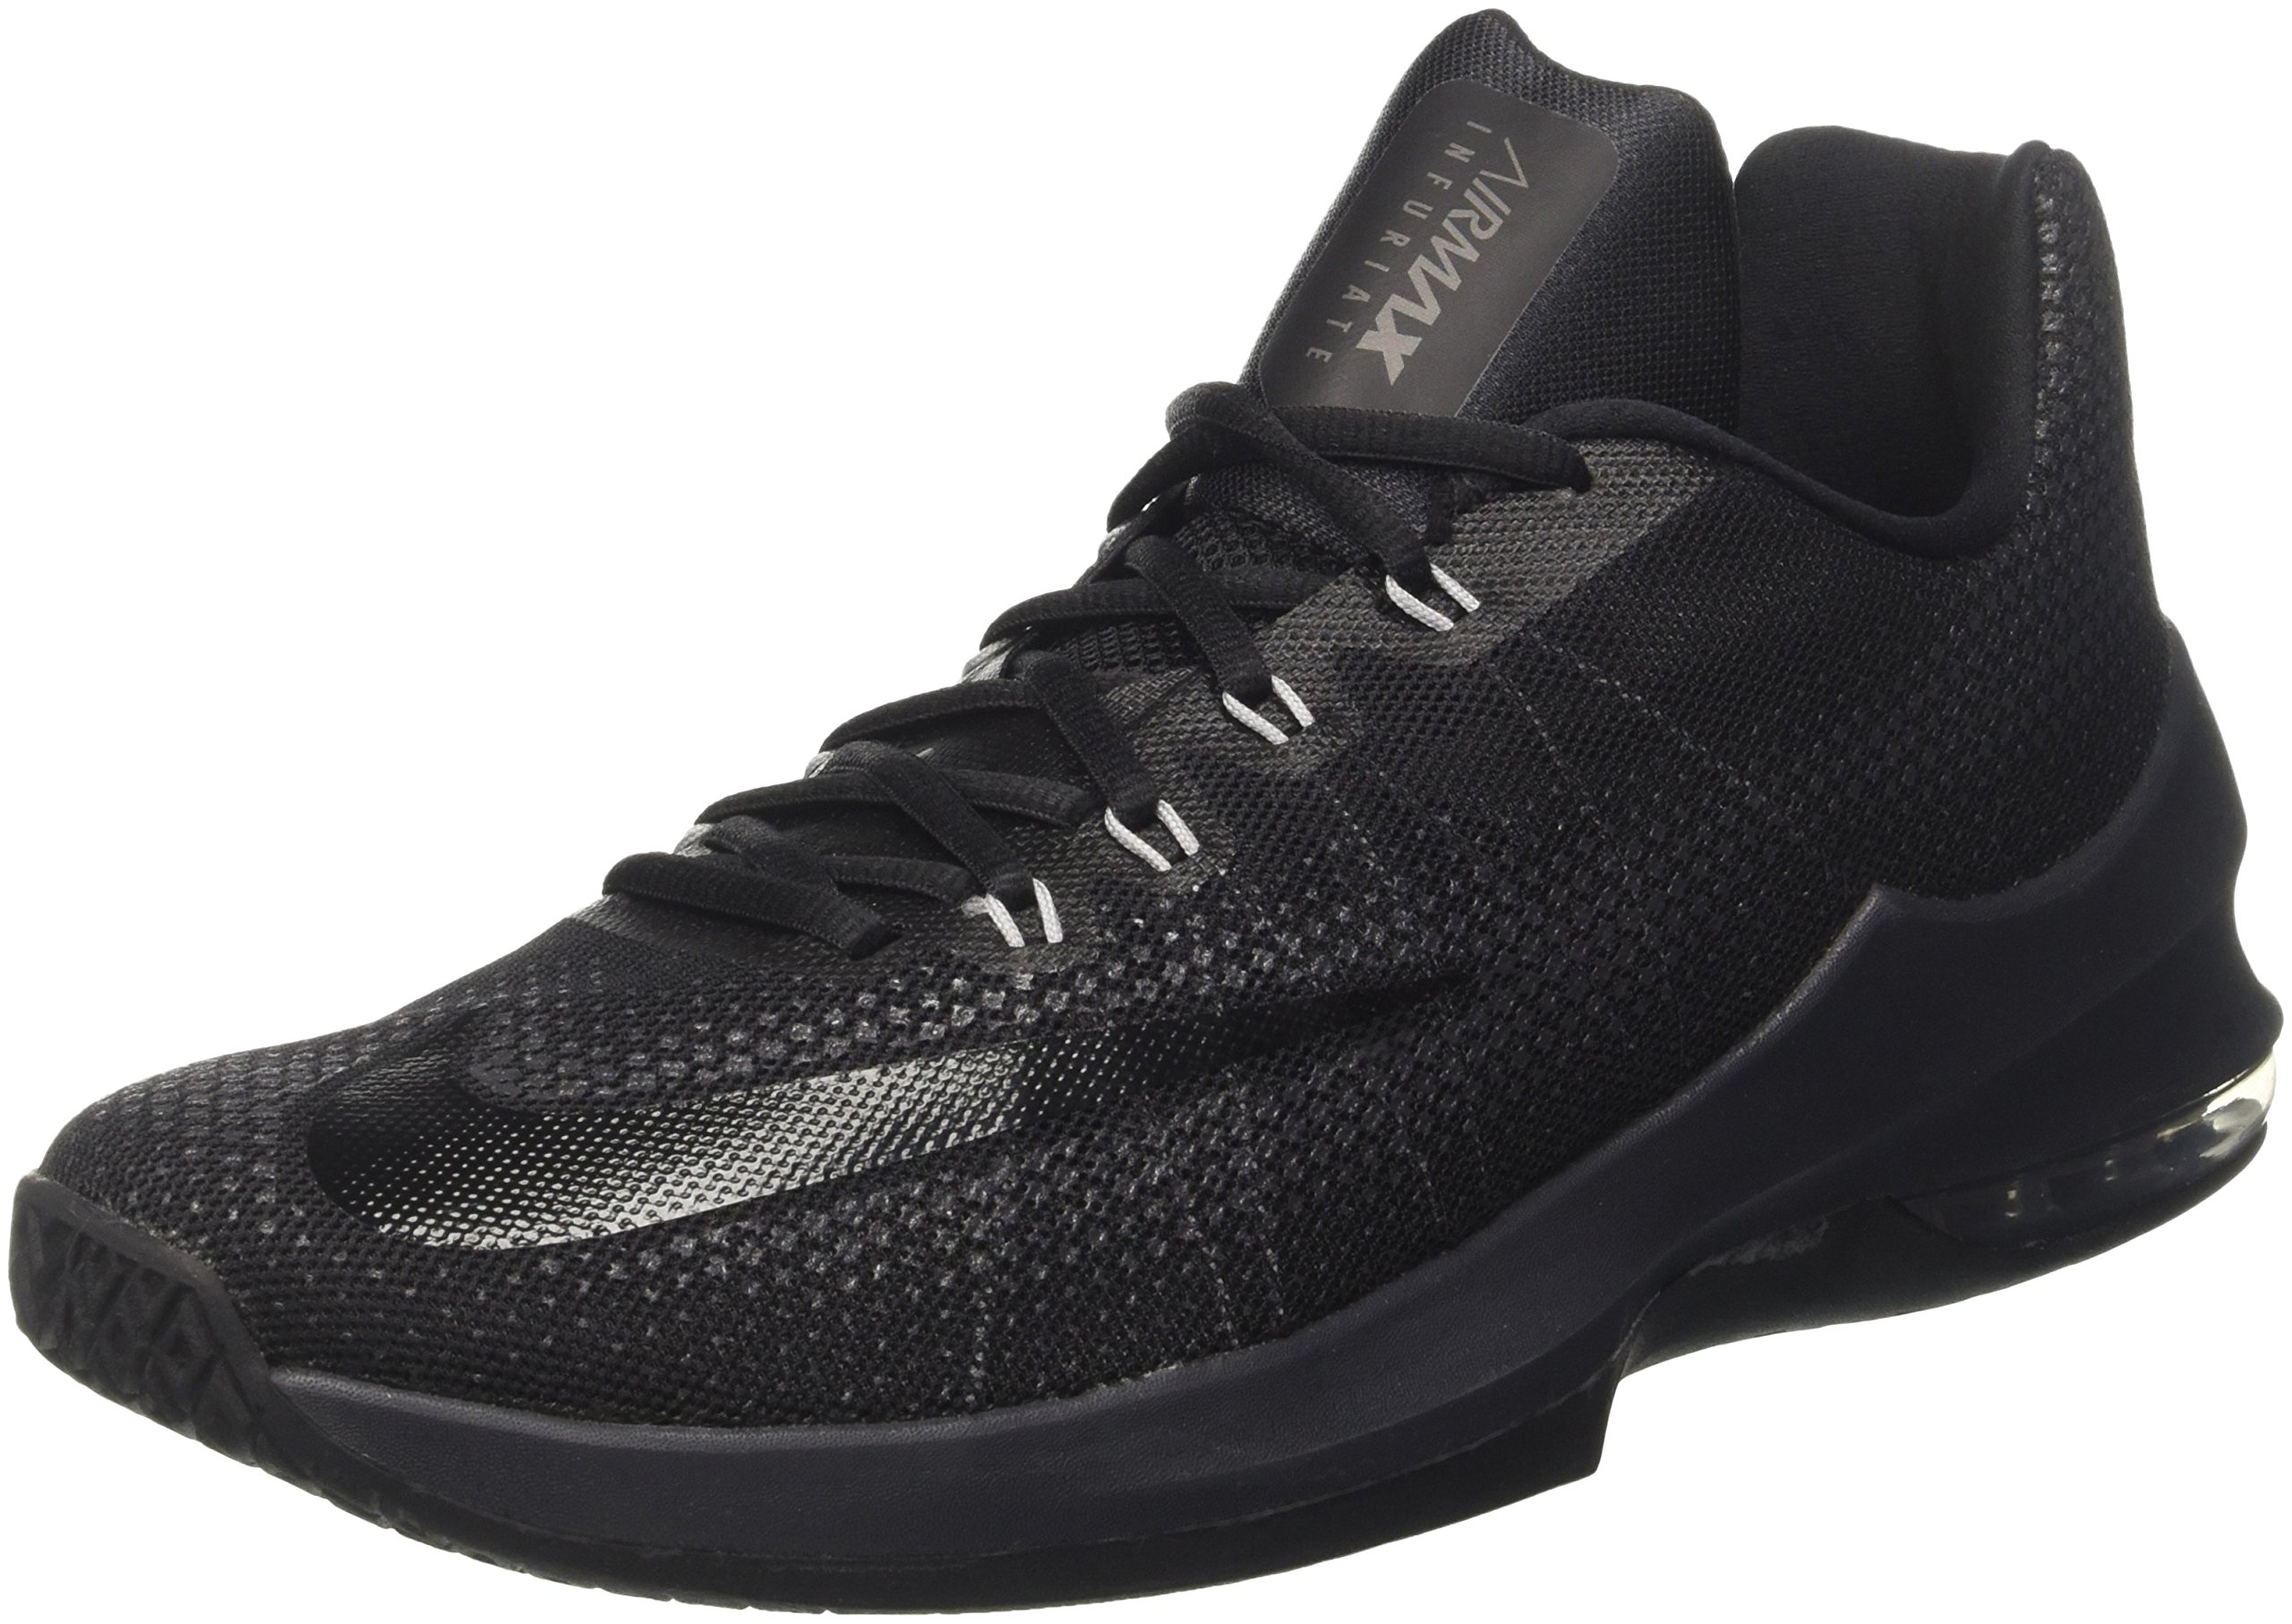 timeless design caacc 729fc Galleon - NIKE Men s Air Max Infuriate Low Basketball Shoe Black Anthracite Dark  Grey Size 11 M US